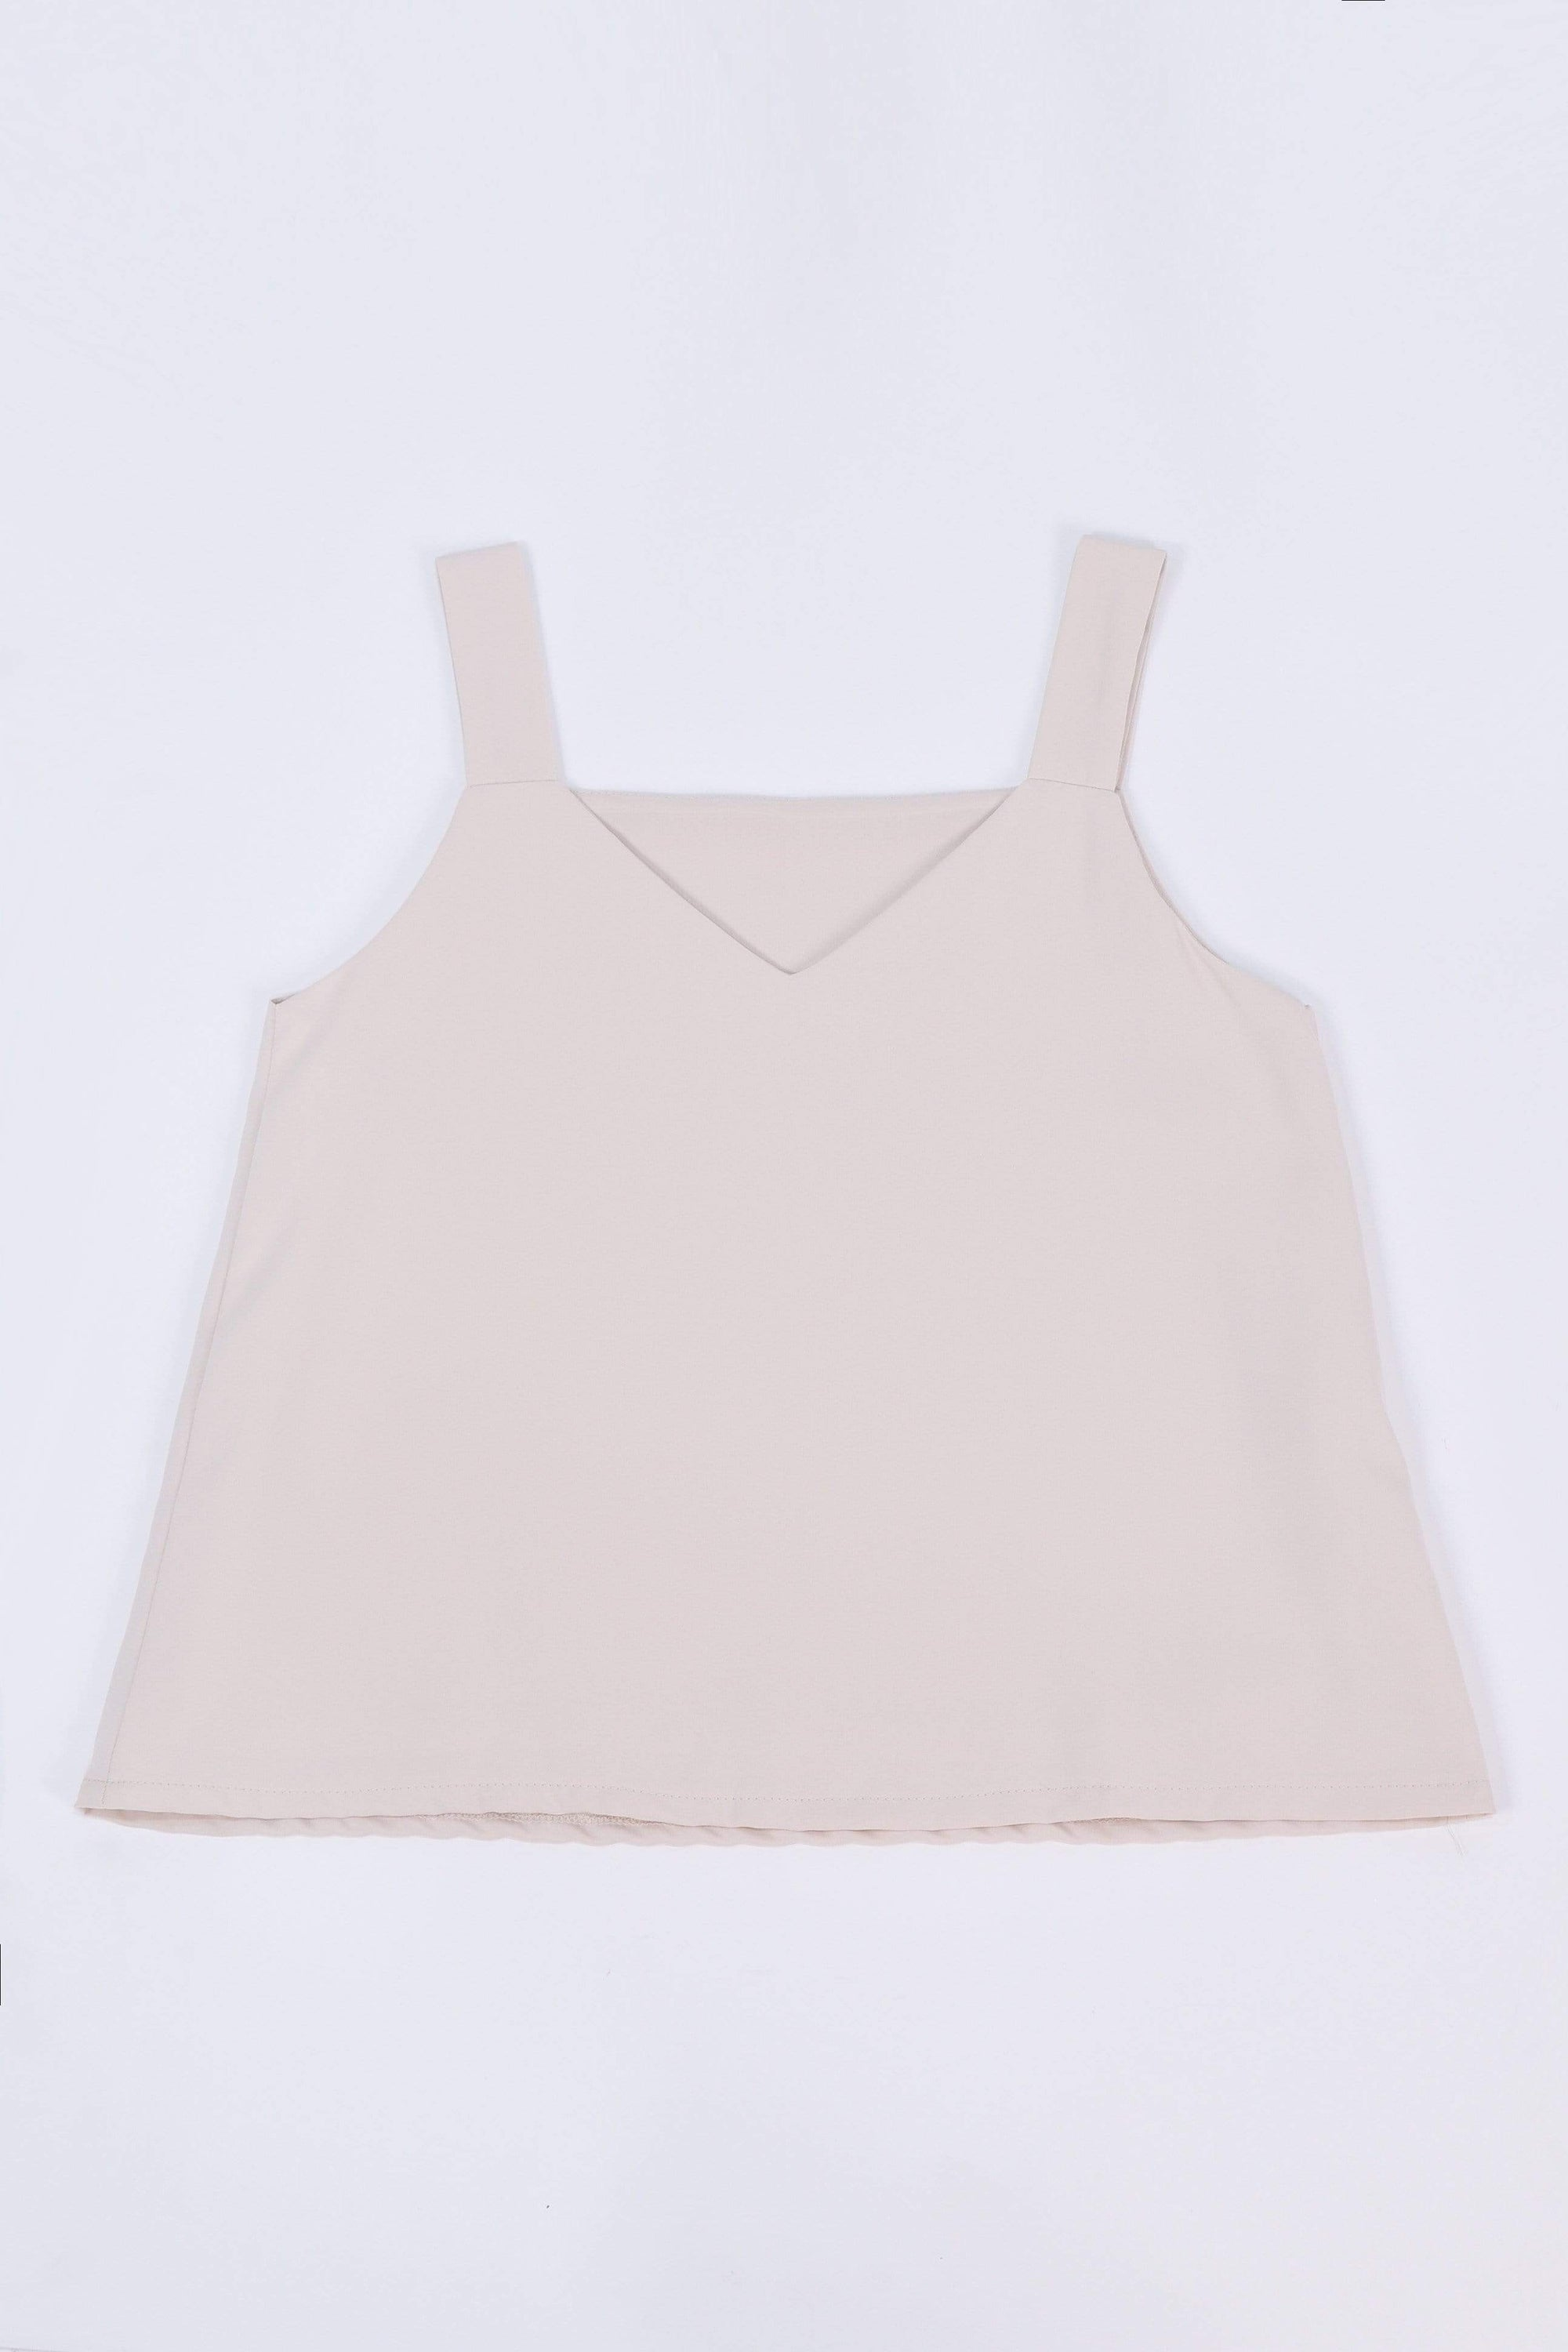 ALYA TWO-WAY THICK STRAP TOP IN SAND